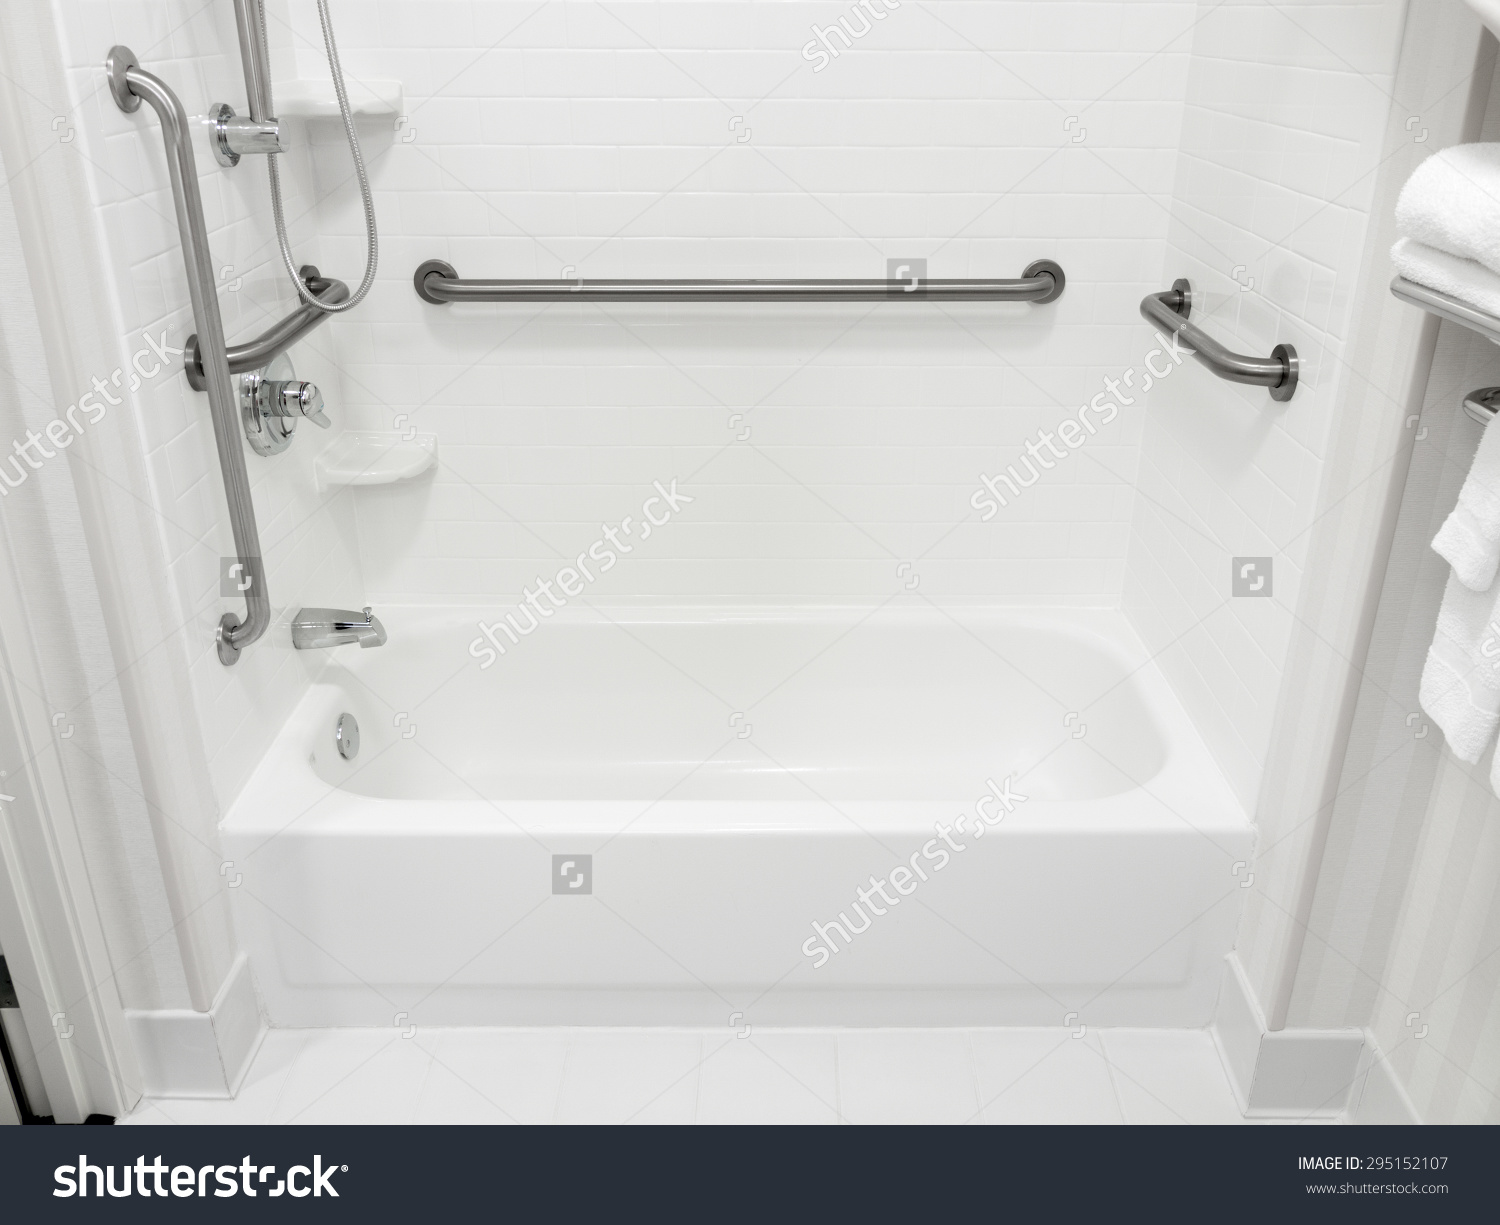 Grab bar clipart image transparent stock Grab bars clipart 20 free Cliparts | Download images on Clipground 2019 image transparent stock